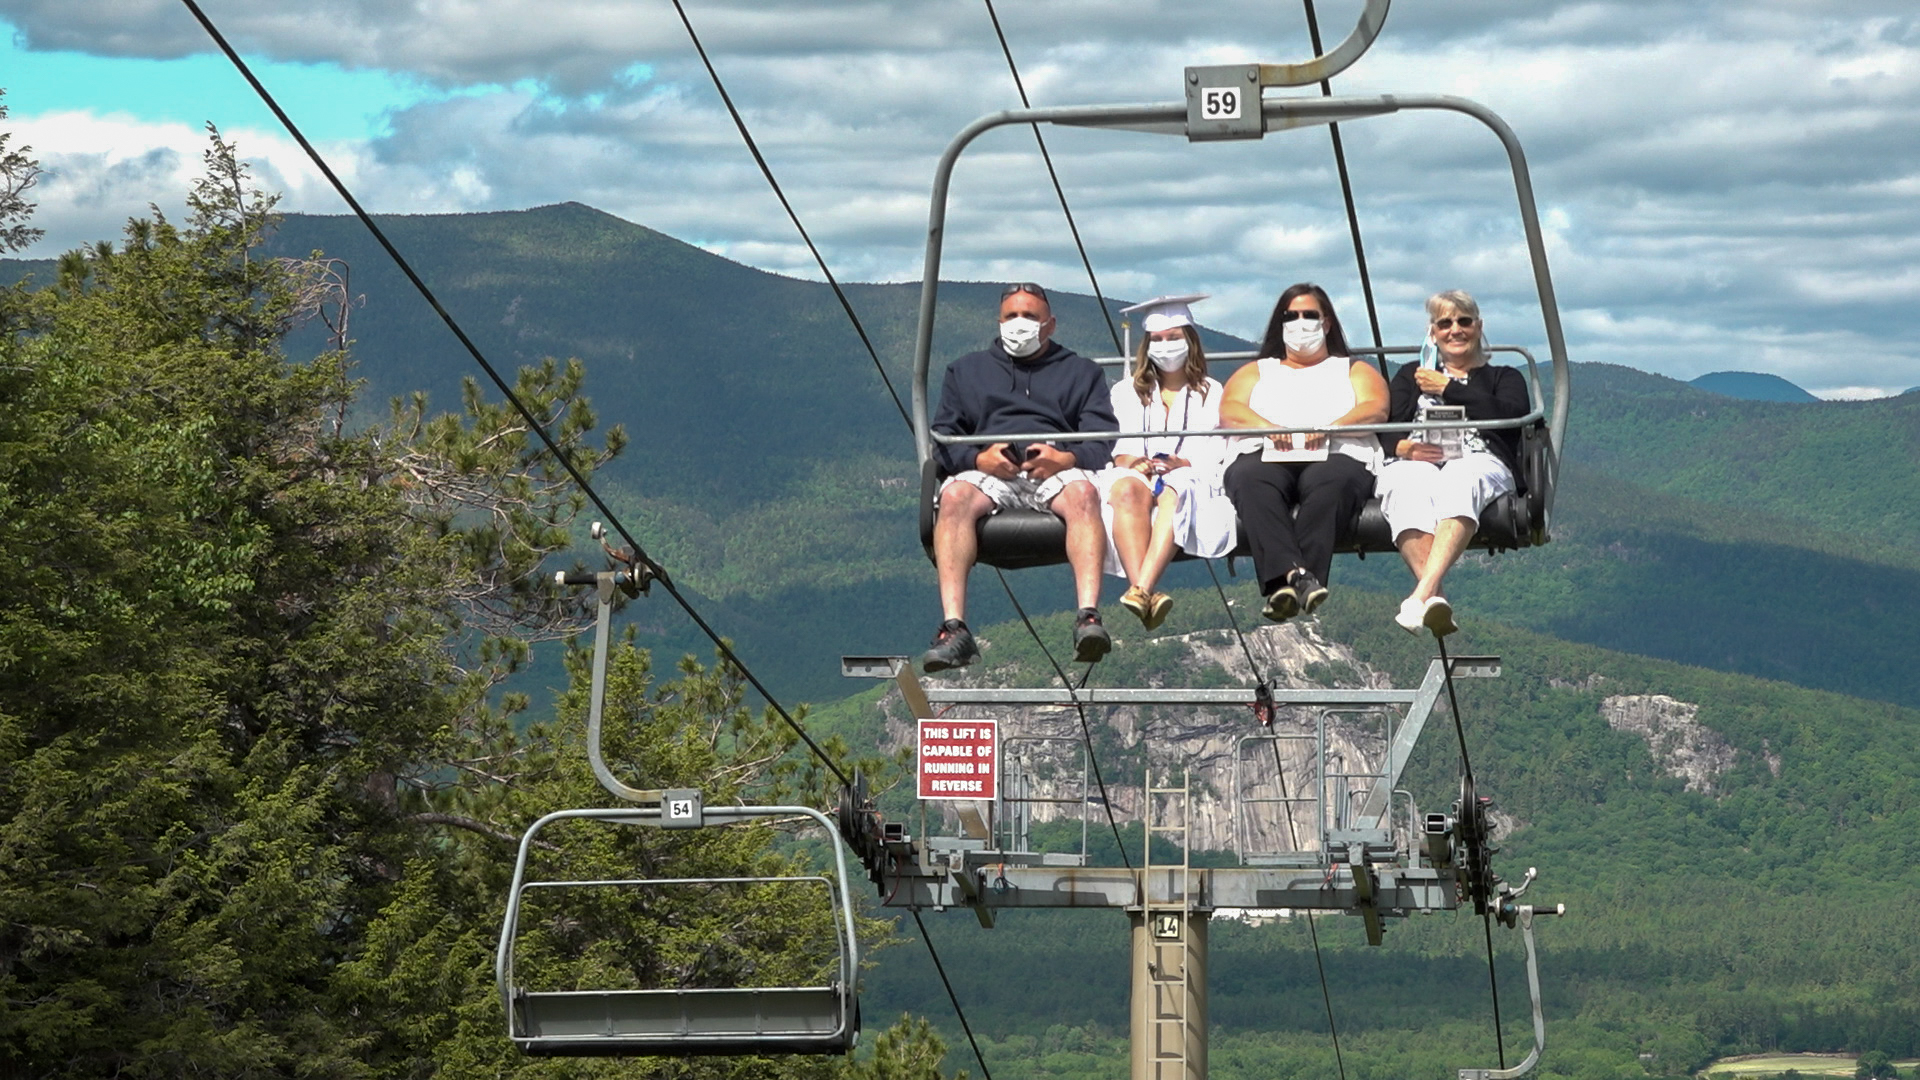 When planning graduation, Kennett High School came up with creating a ski lift graduation at Cranmore Mountain resort.